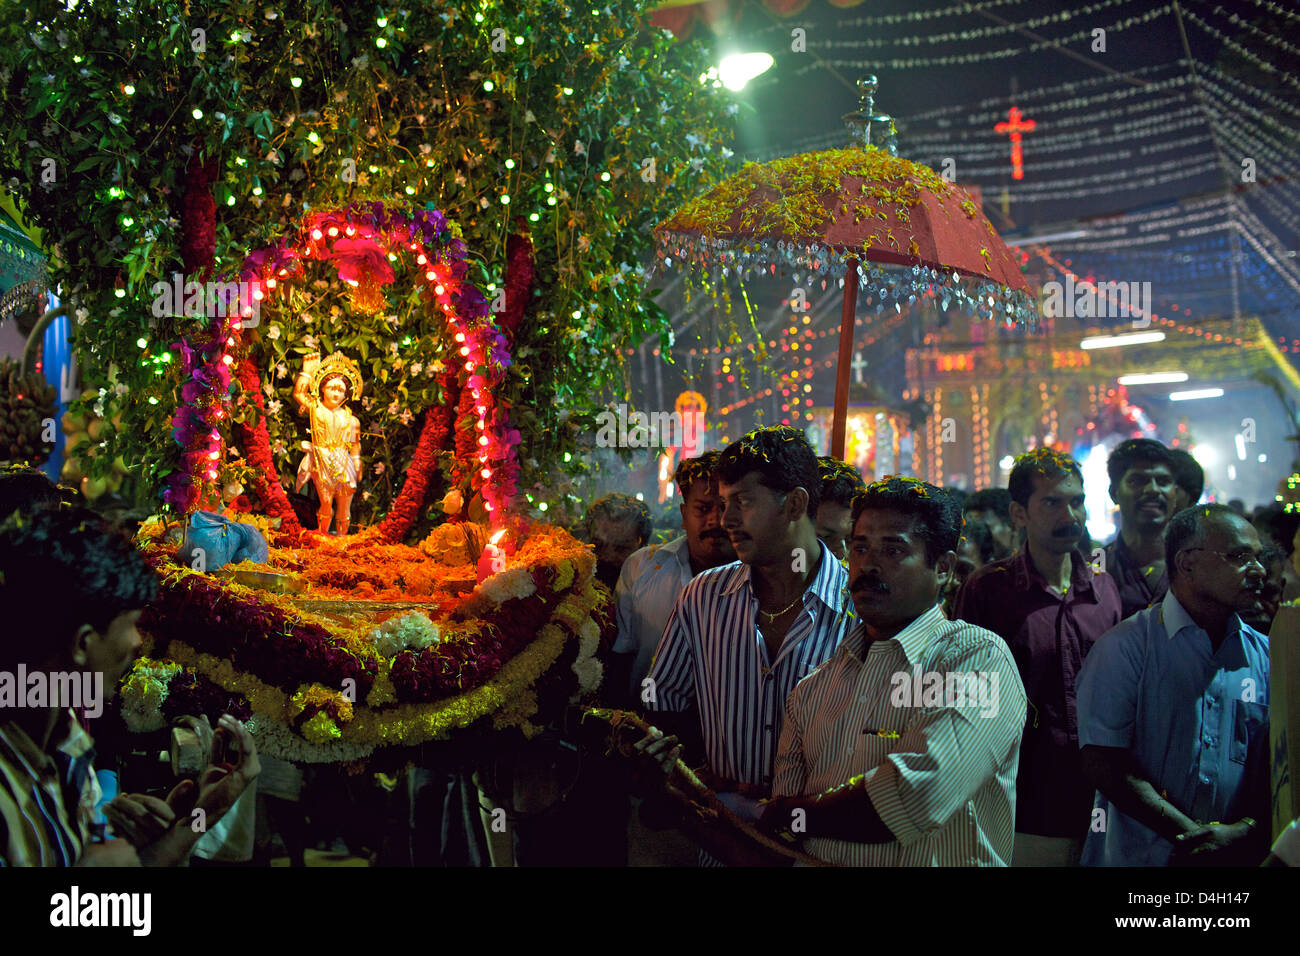 Christian celebration for St. Sebastian birthday in the small village of Poovar on the south coast of Kerala, India - Stock Image